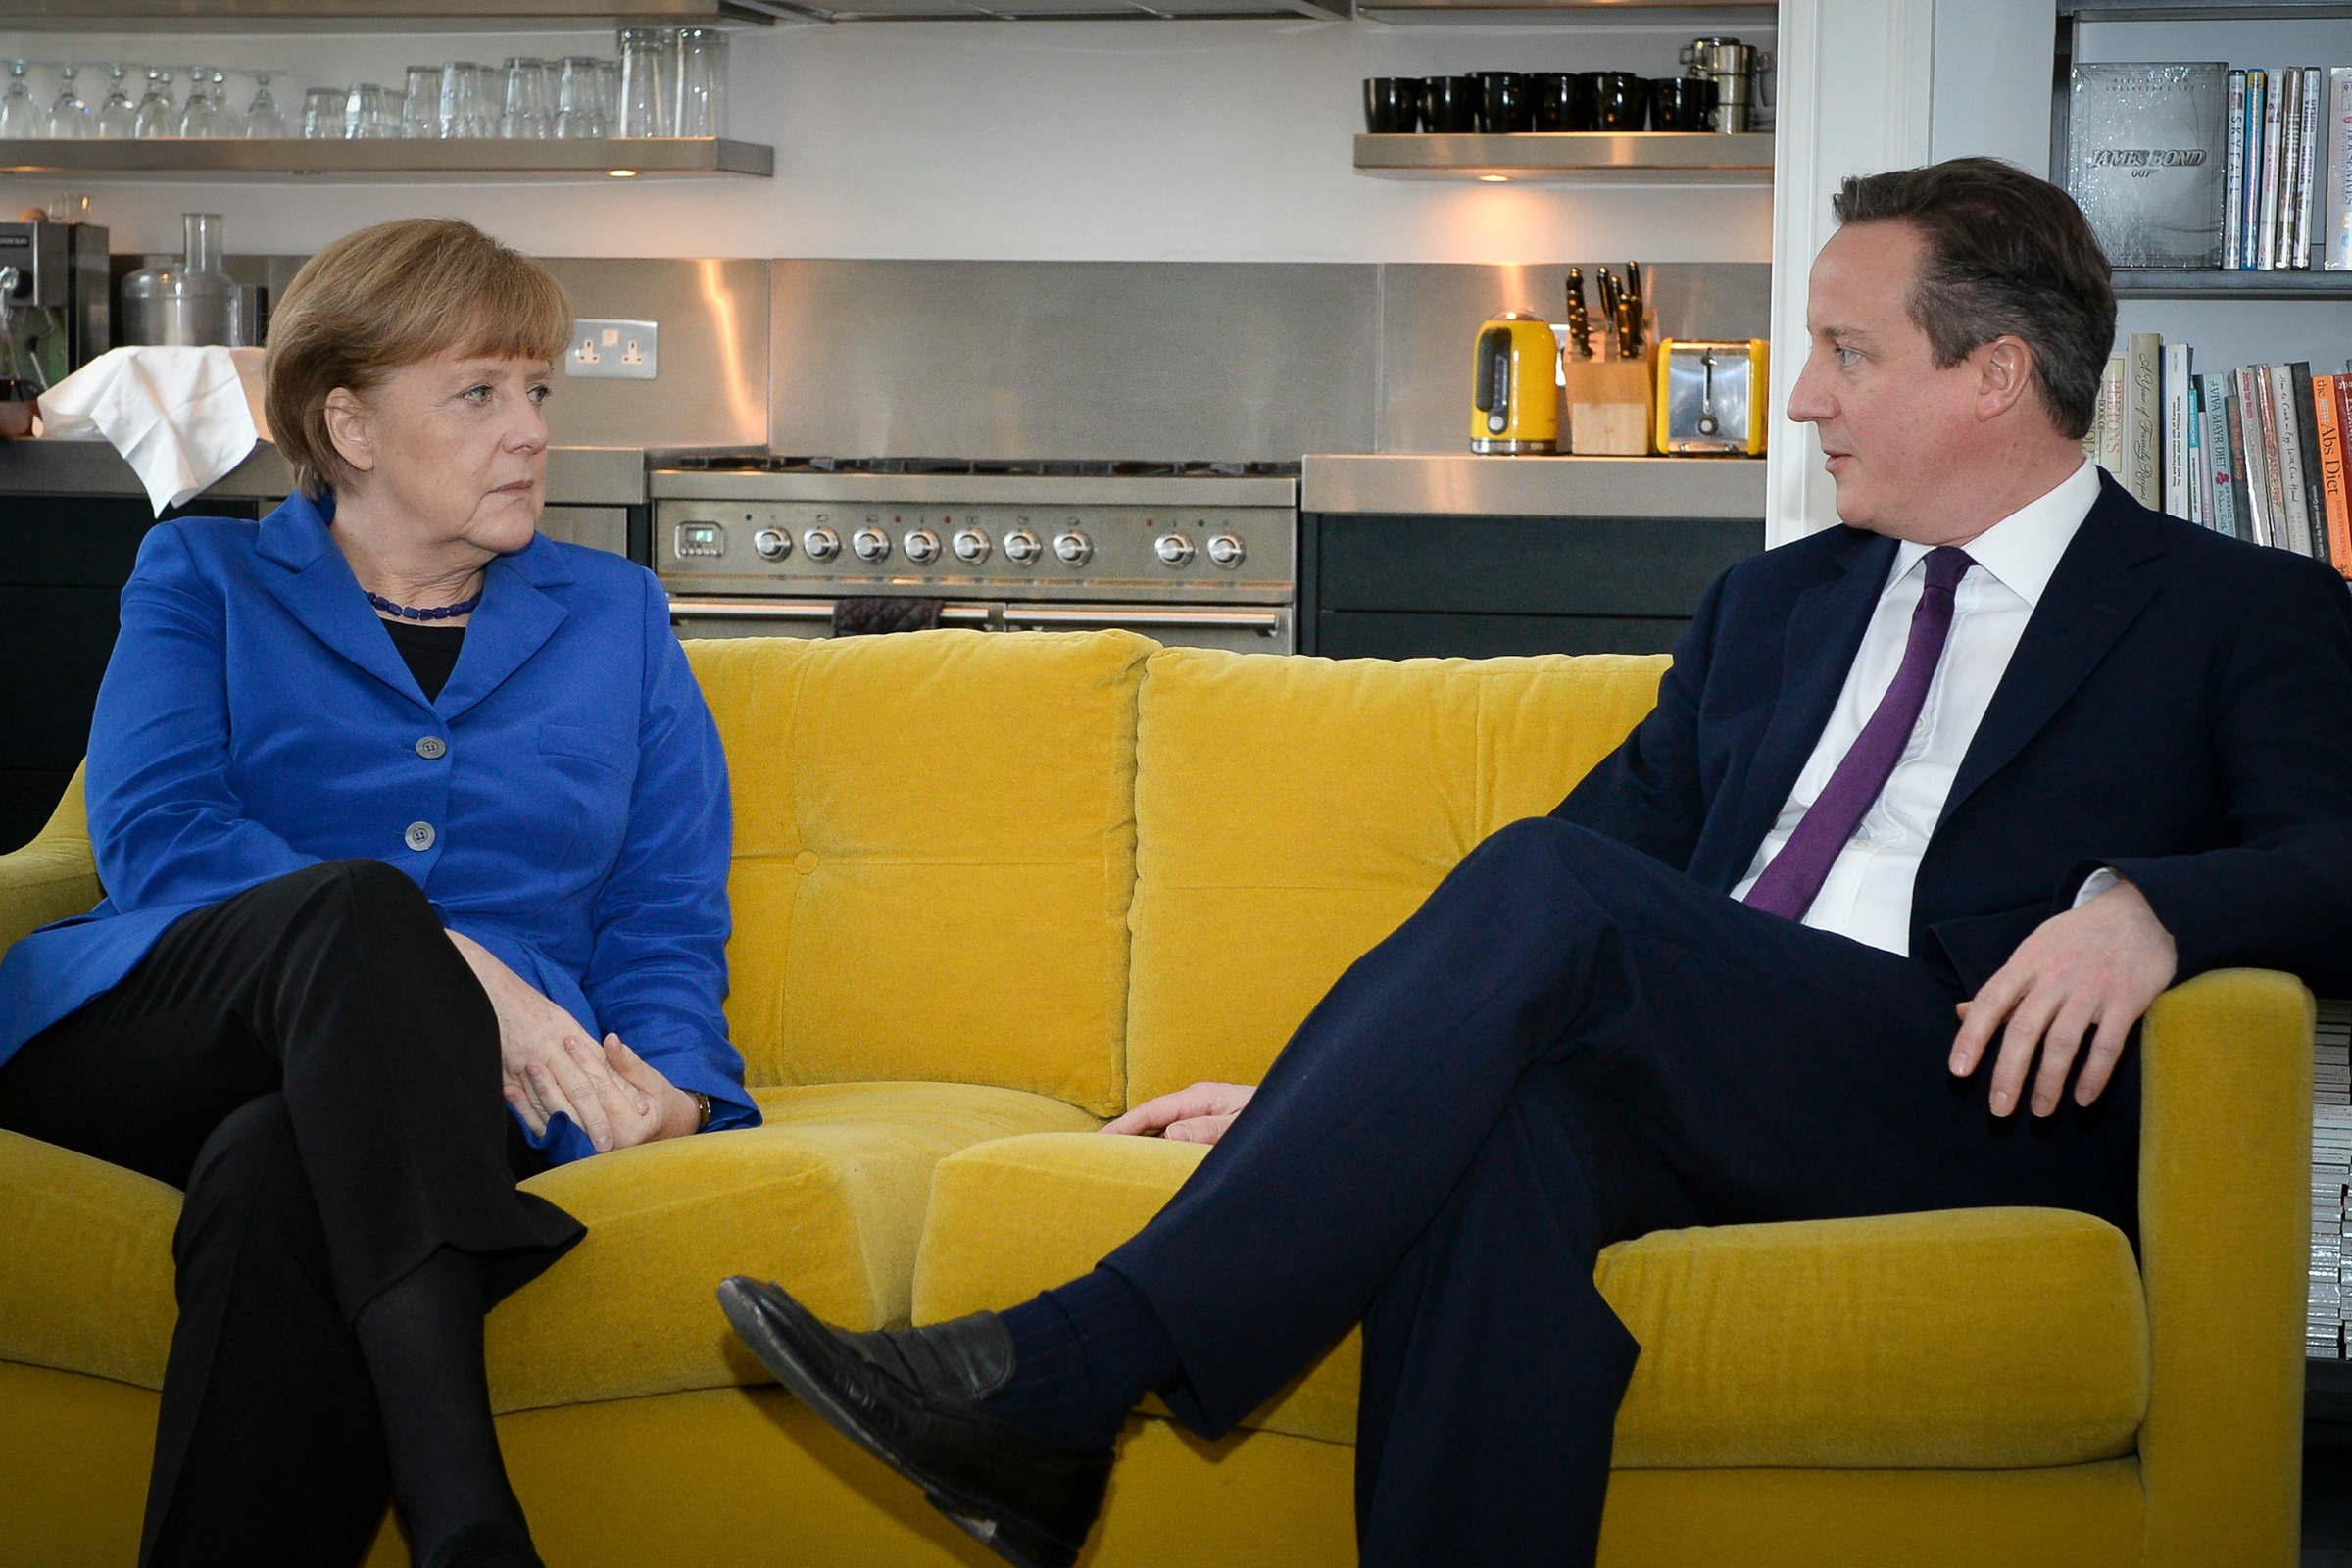 German chancellor Angela Merkel and British PM David Cameron [Number 10/Flickr]